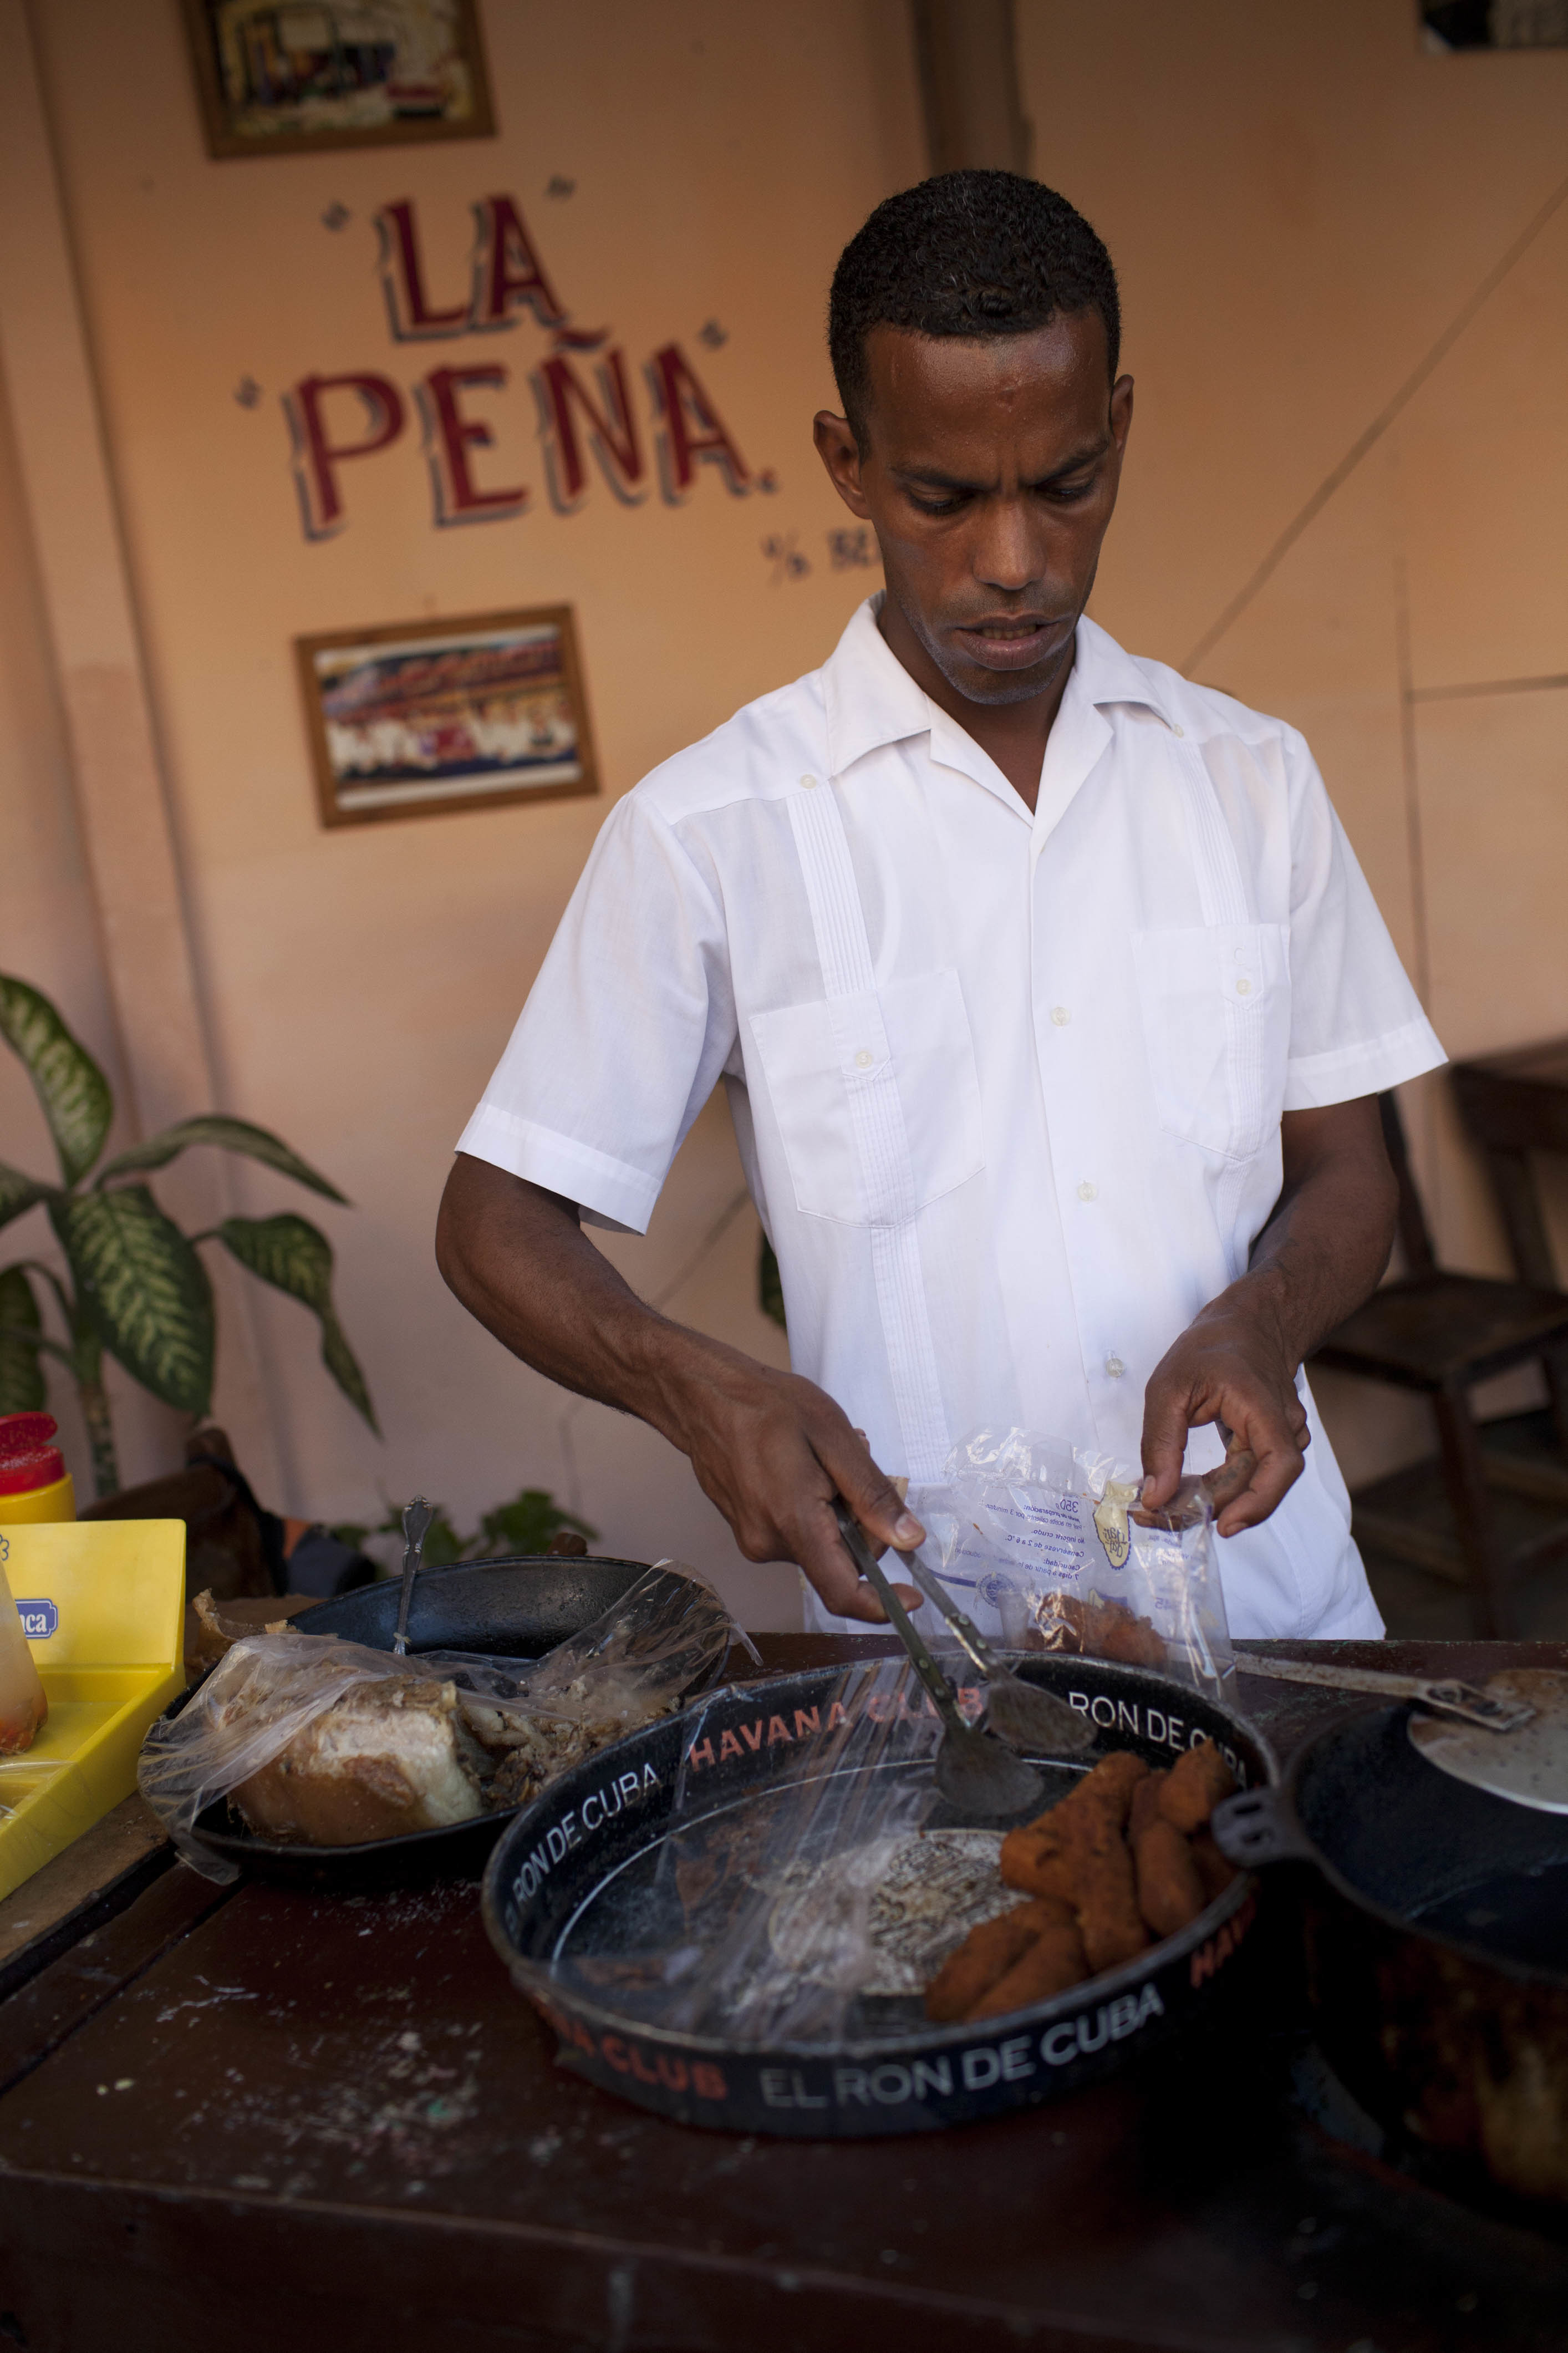 A Cuban man serves croquettes from a tray in a small local cafe, Havana old town. (Photo by In Pictures Ltd./Corbis via Getty Images)